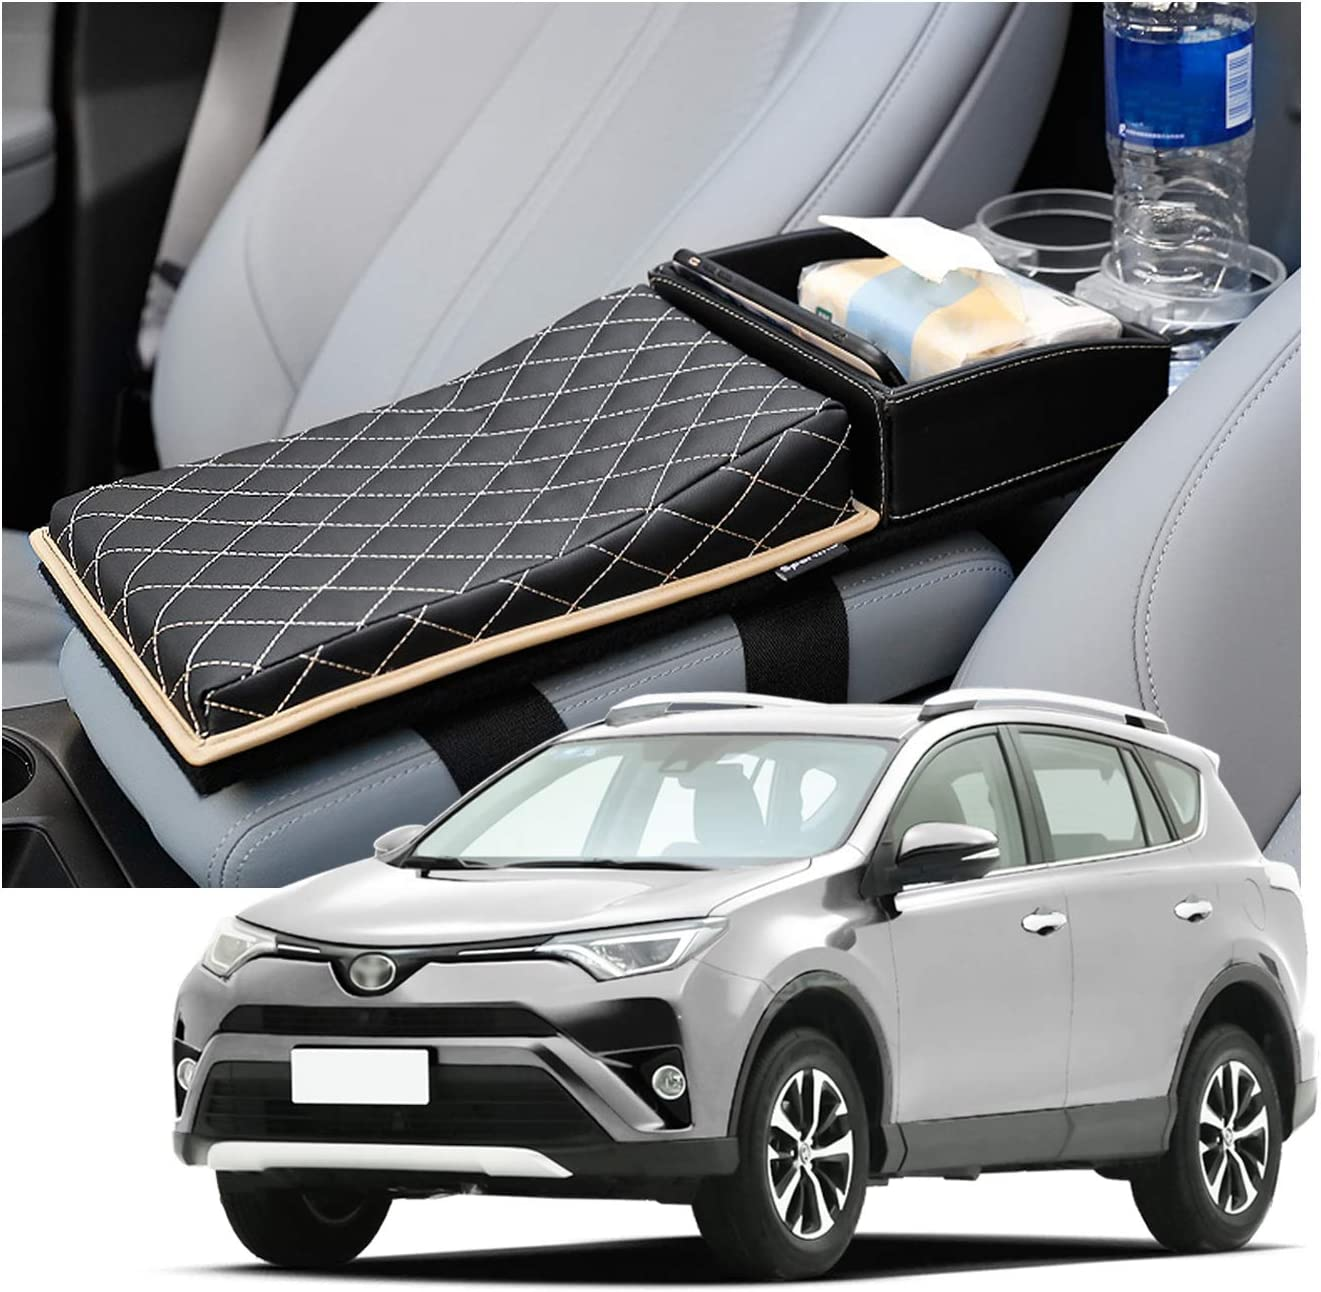 Black Leather Beige Lines Rav4 Interior Accessories,Armrest Pad Cushion Compatible for Toyota Rav4 2019-2020 Armrest Heightening Pad Cover Compatible for Toyota Rav4,Relieve Driving Fatigue.